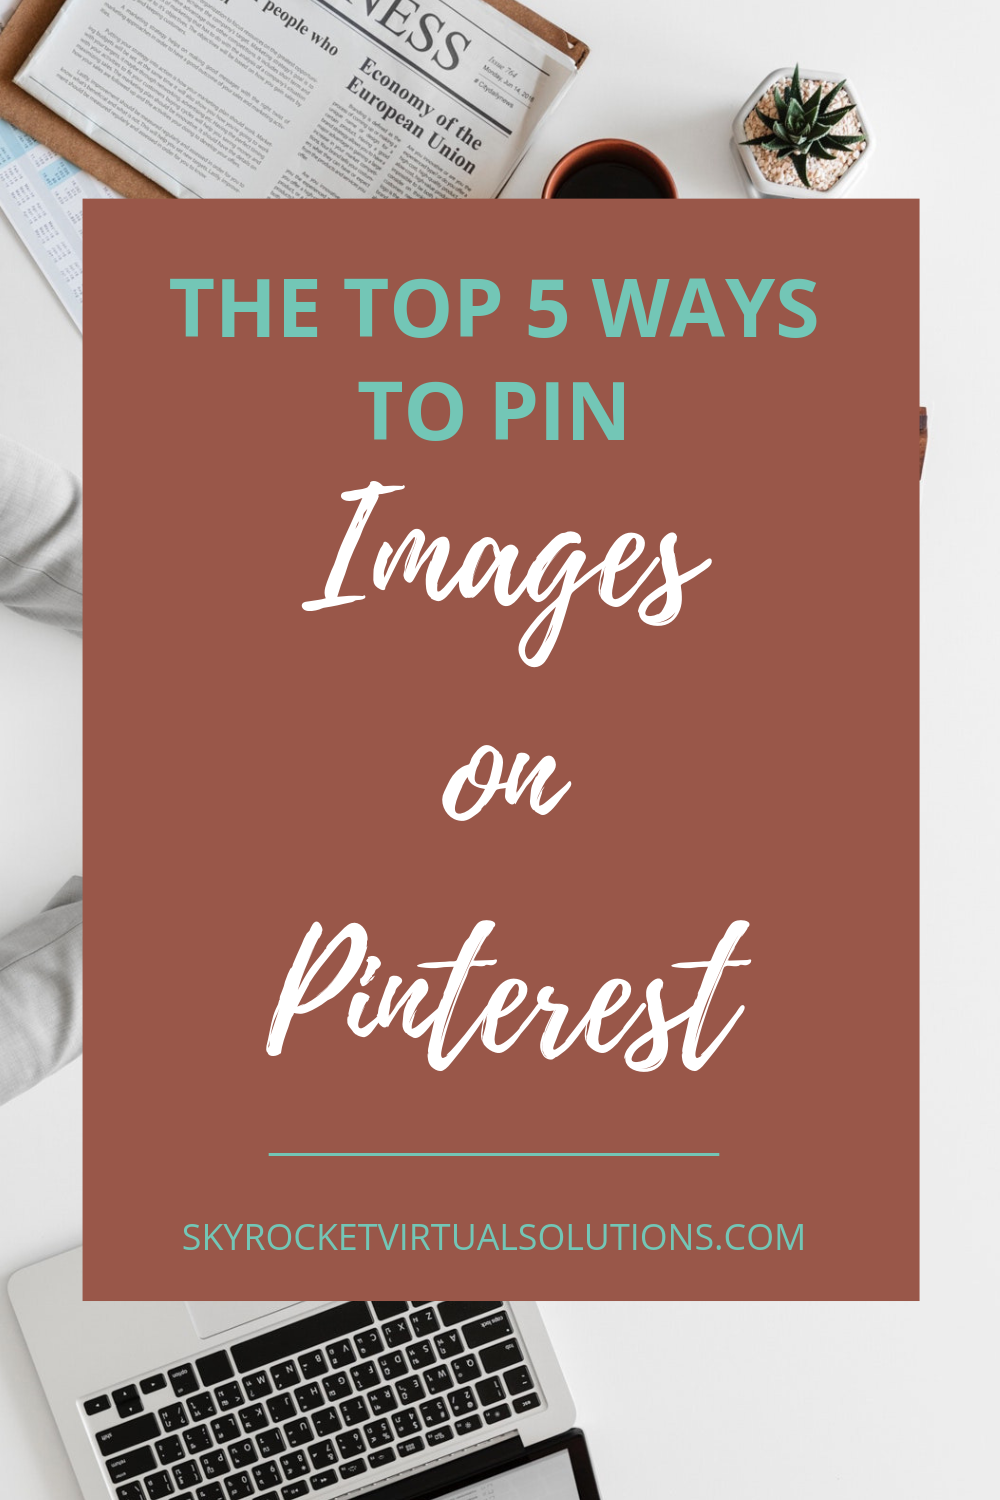 5 Ways To Pin Images On Pinterest.png